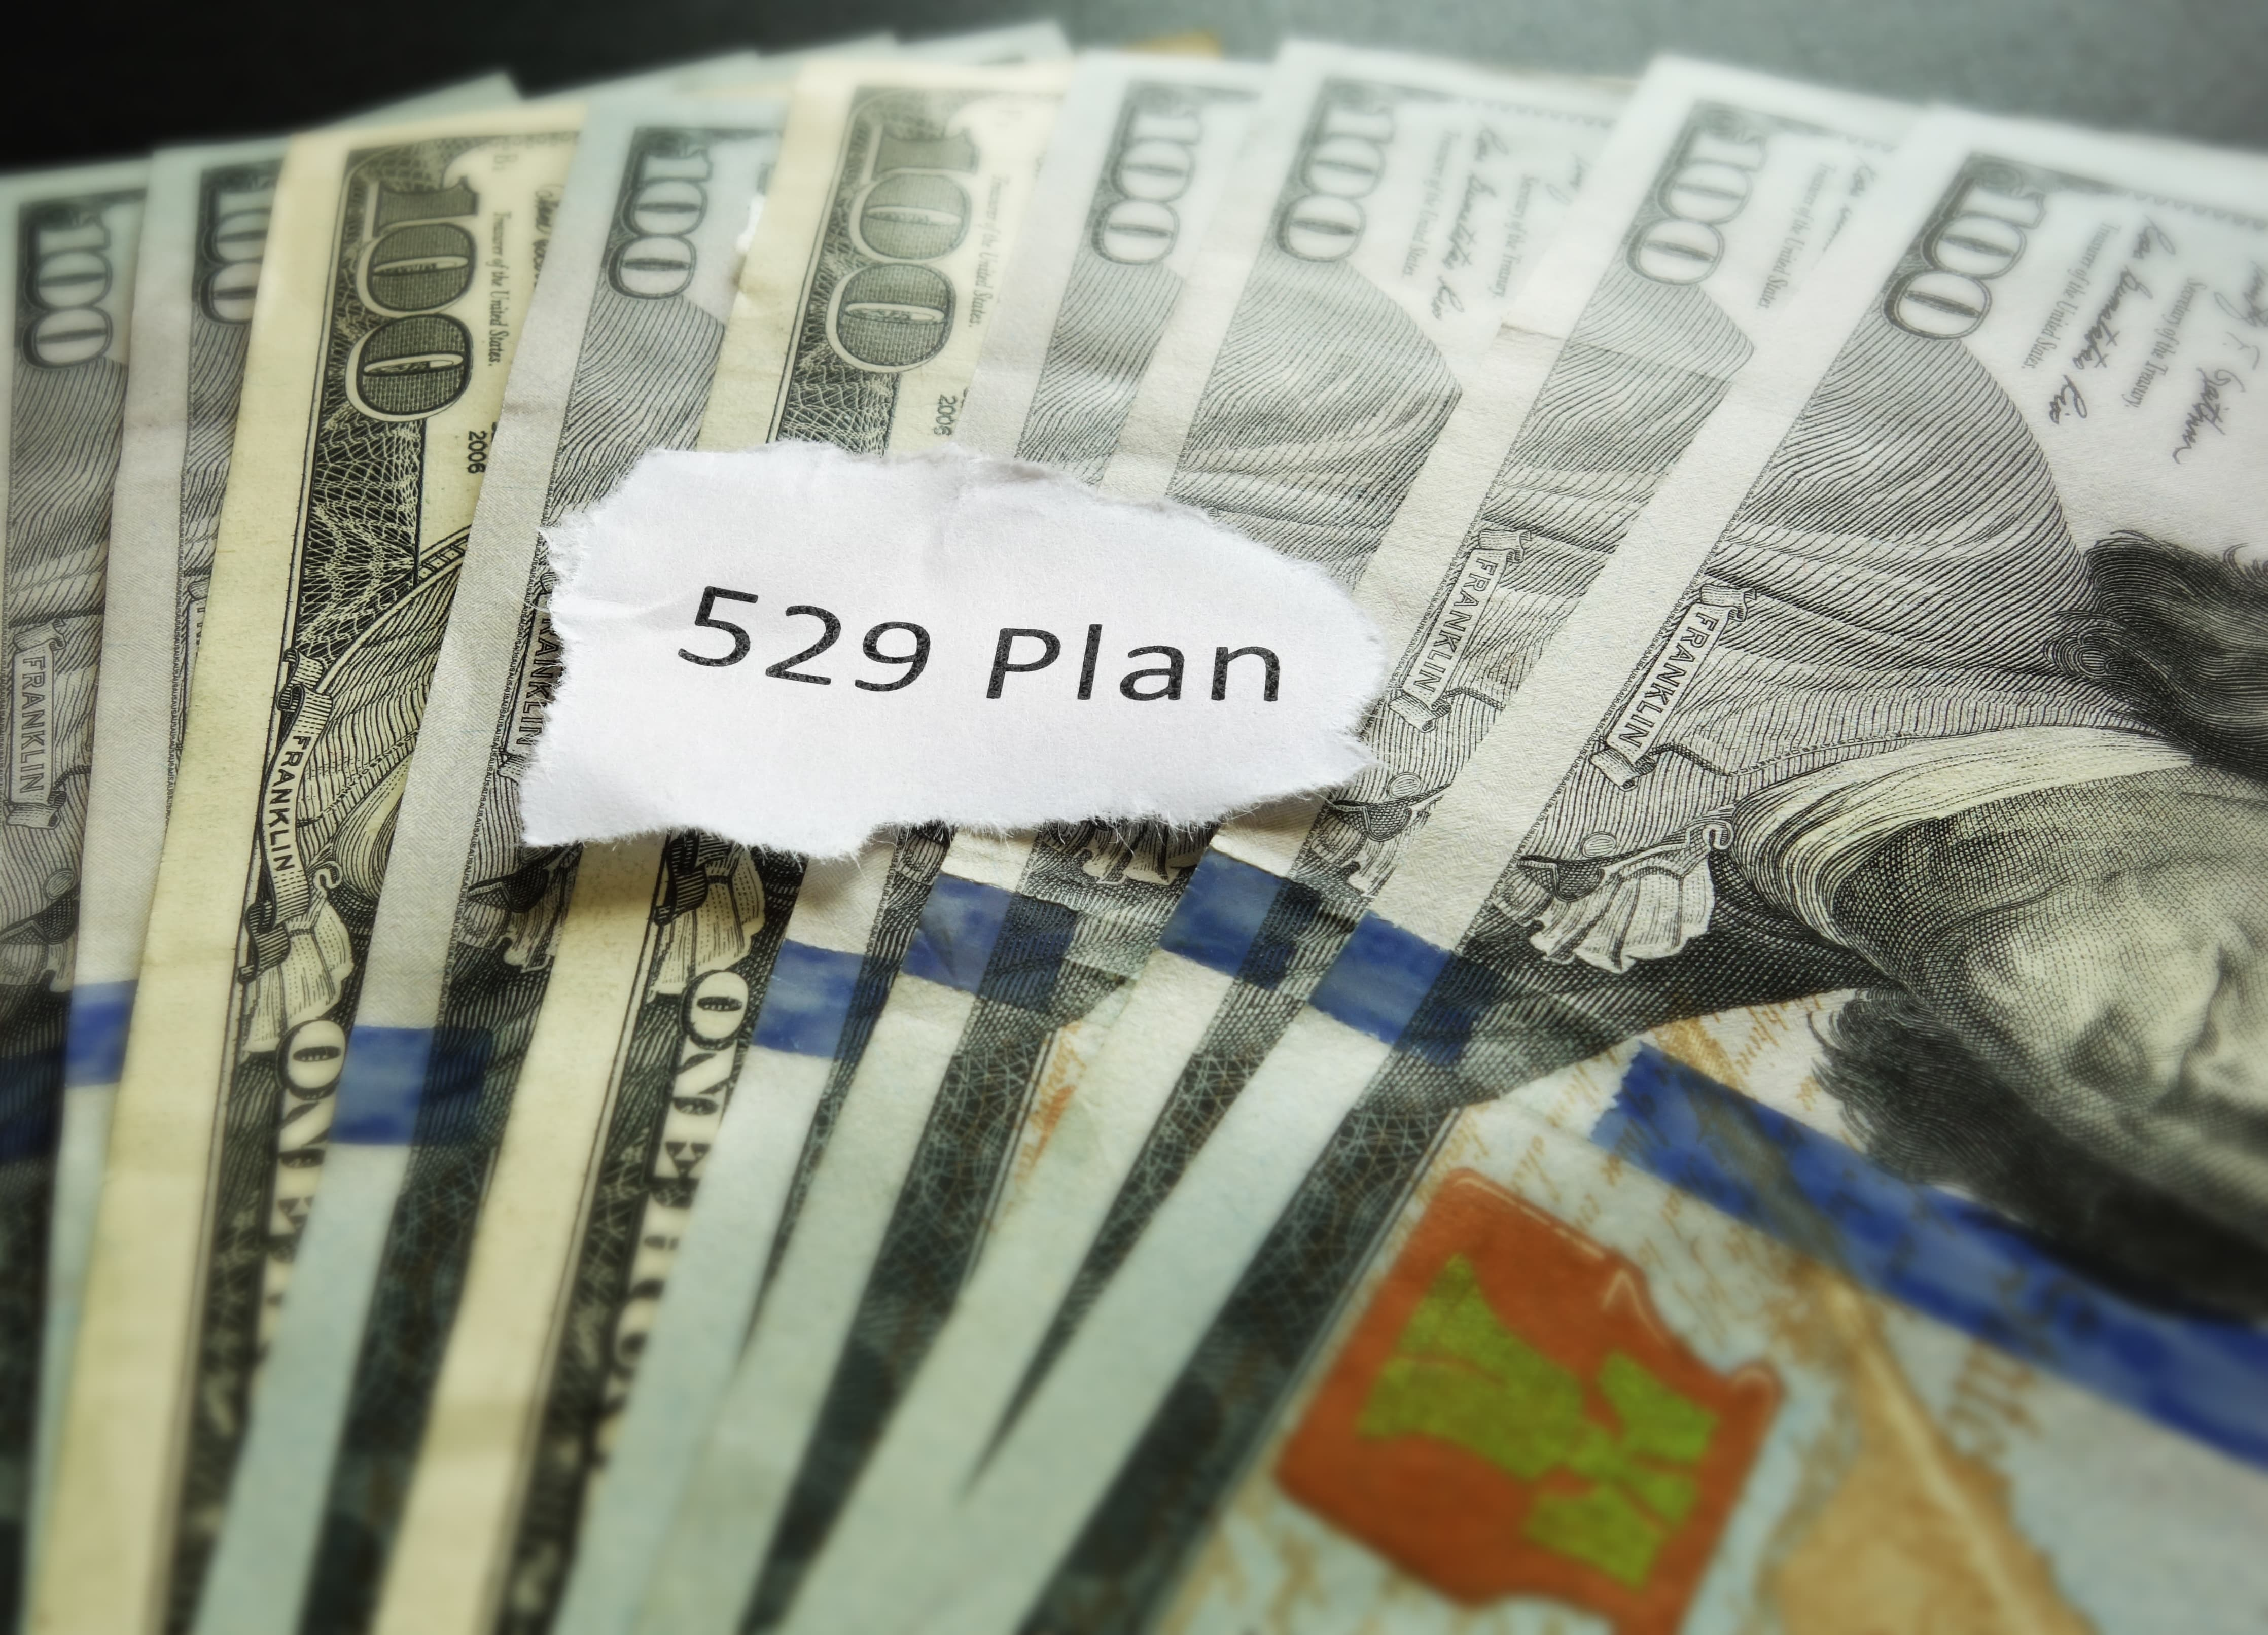 Can I Use a 529 Plan to Pay for Medical School?